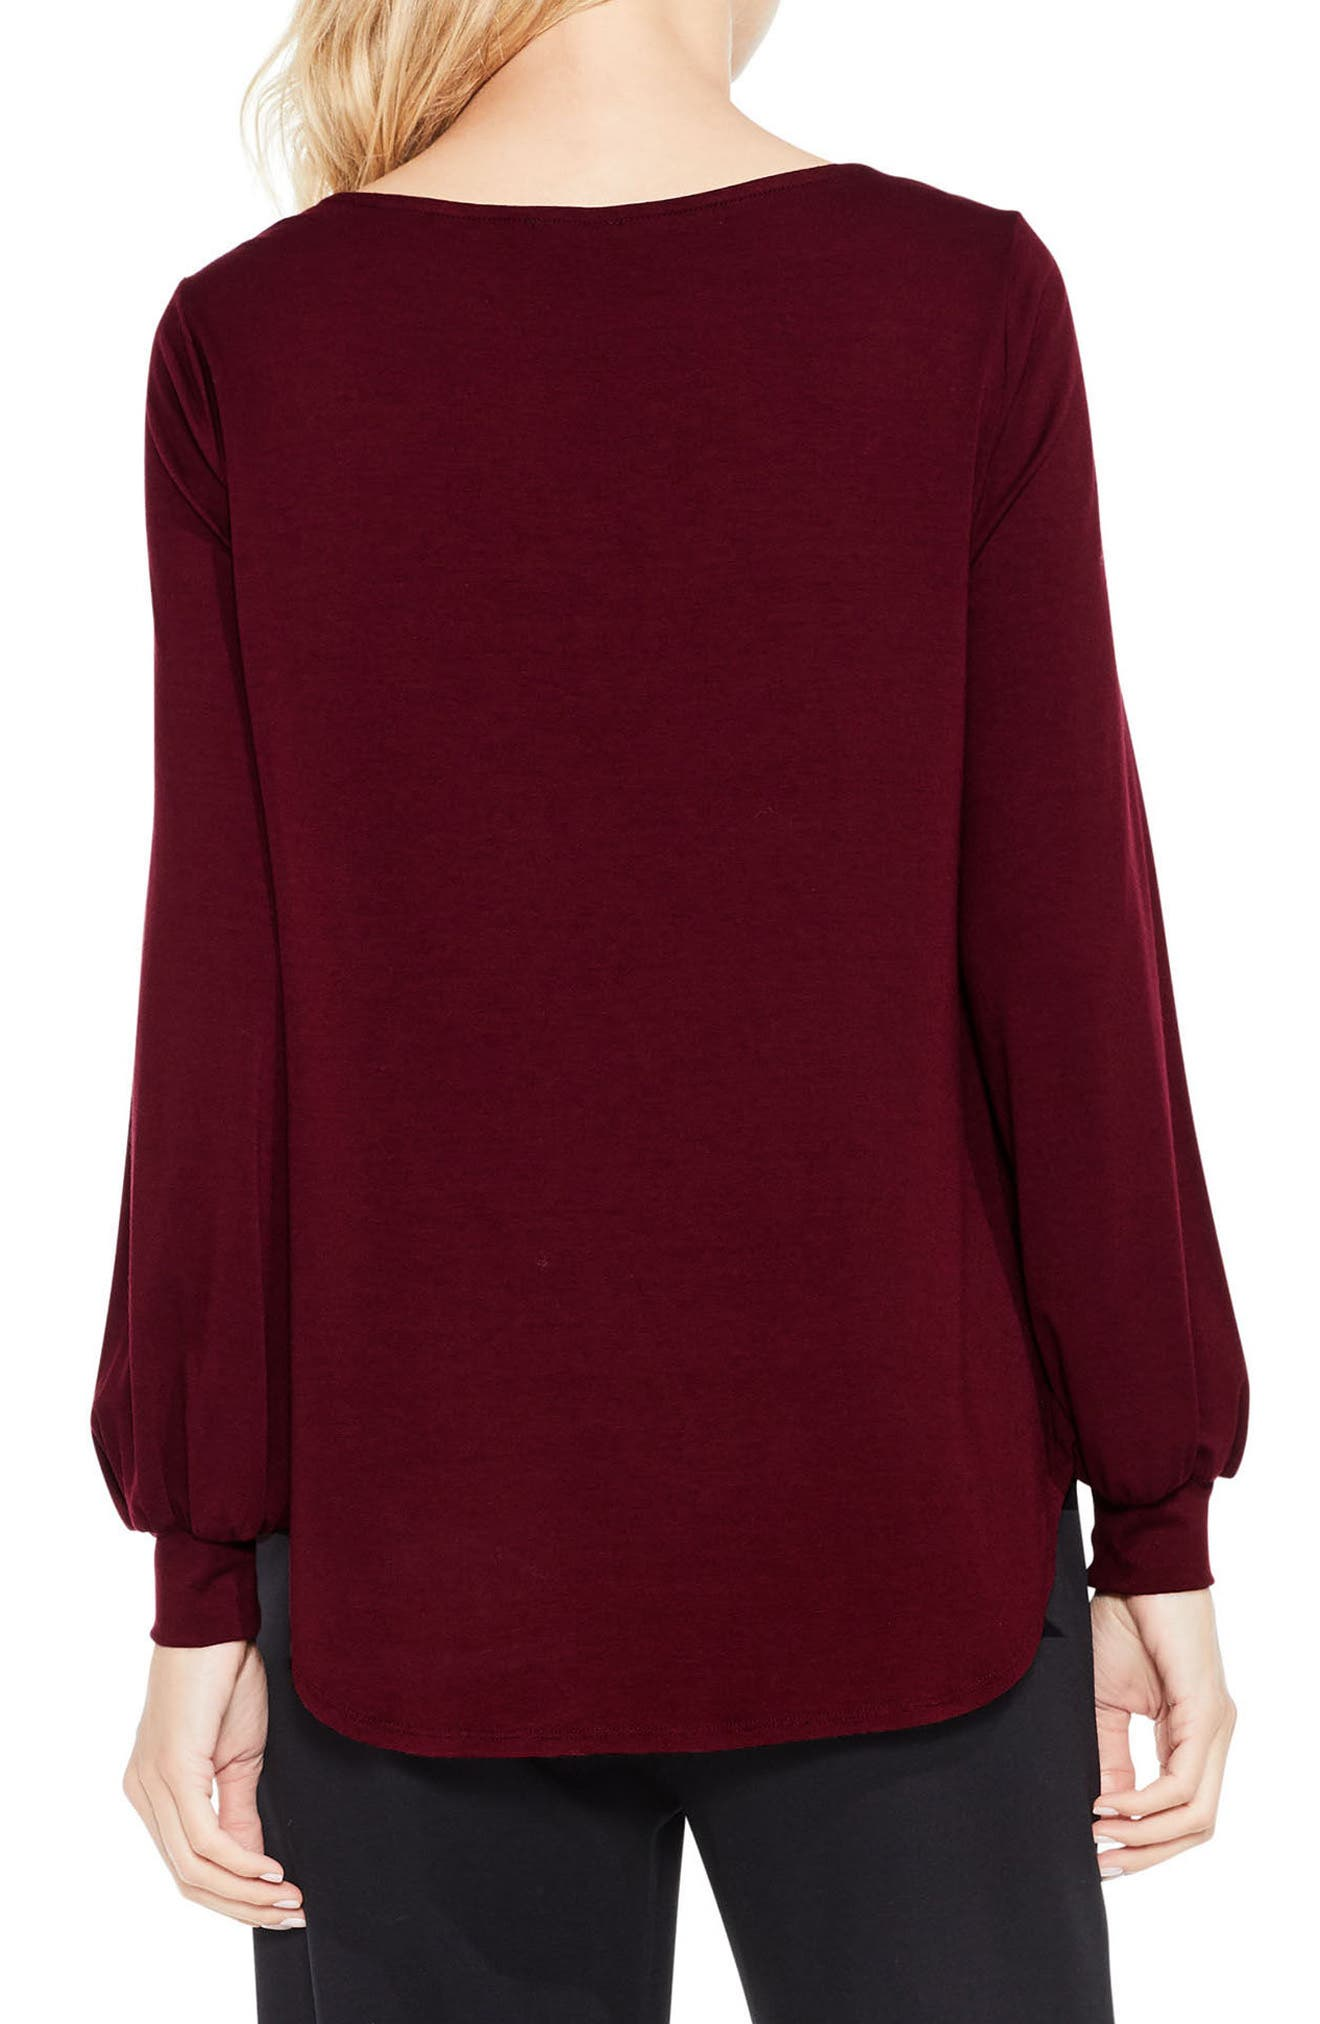 Long Sleeve Foldover Mix Media Blouse,                             Alternate thumbnail 2, color,                             930